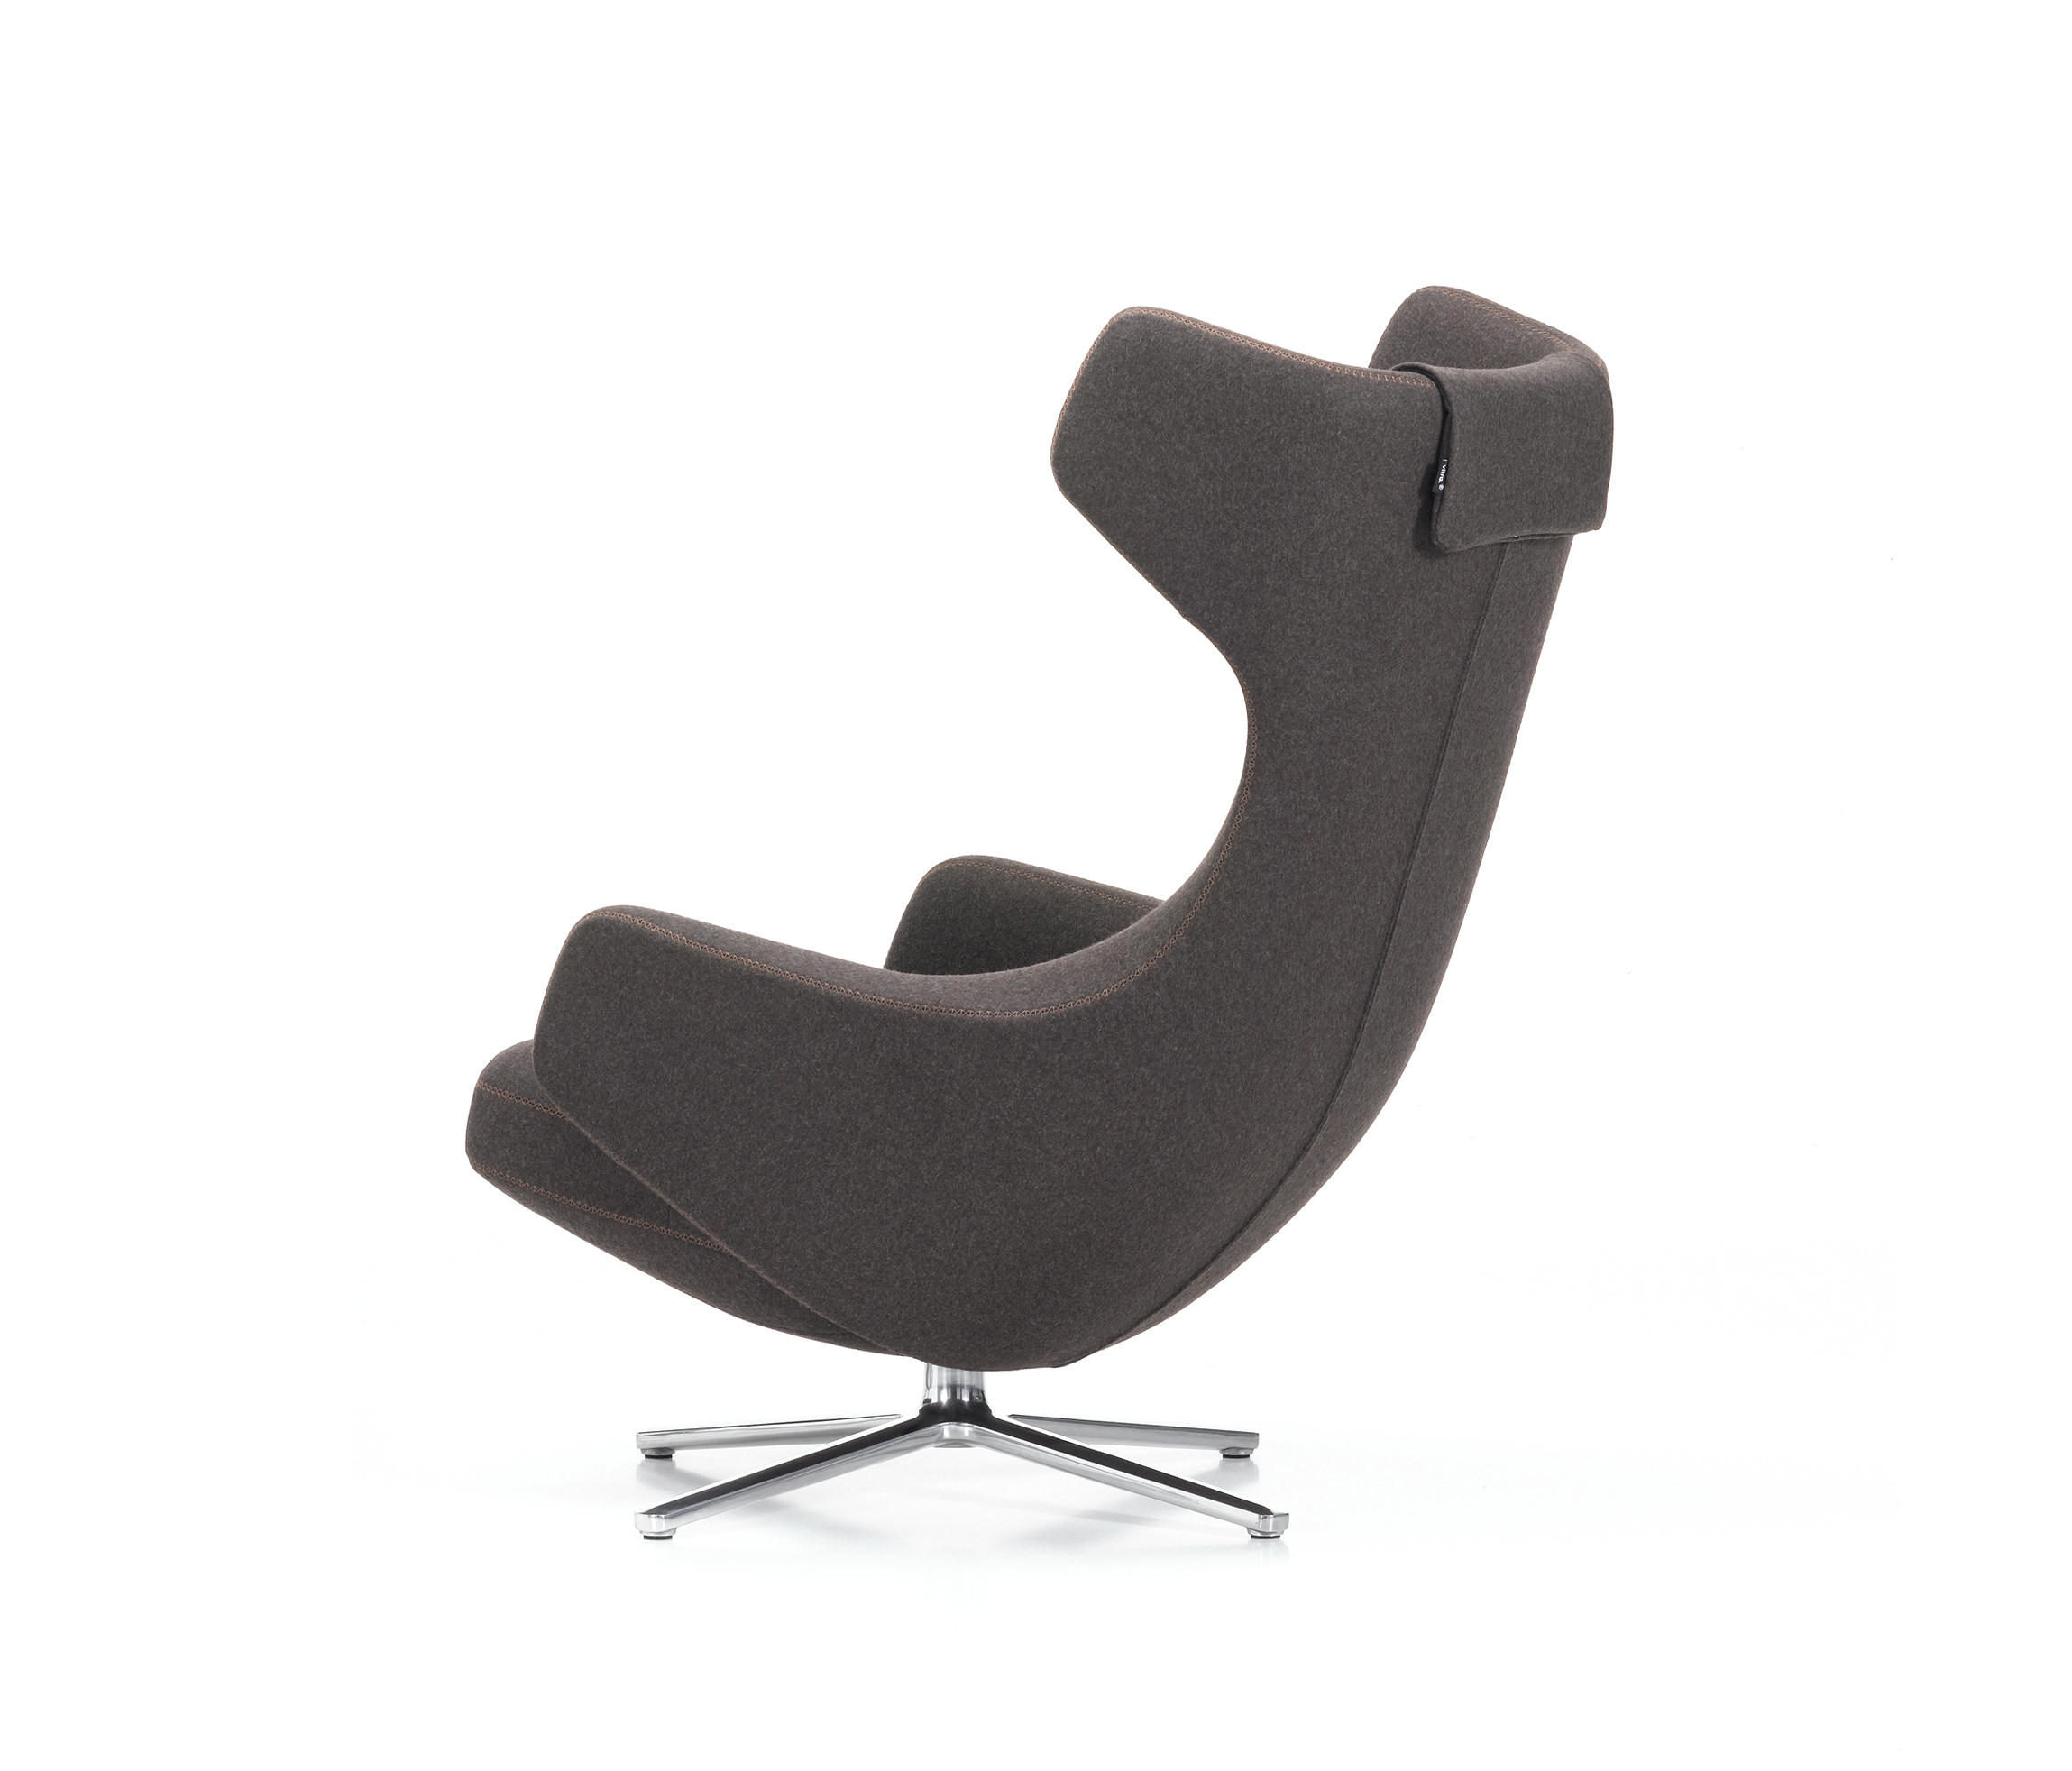 grand repos lounge chairs from vitra architonic. Black Bedroom Furniture Sets. Home Design Ideas